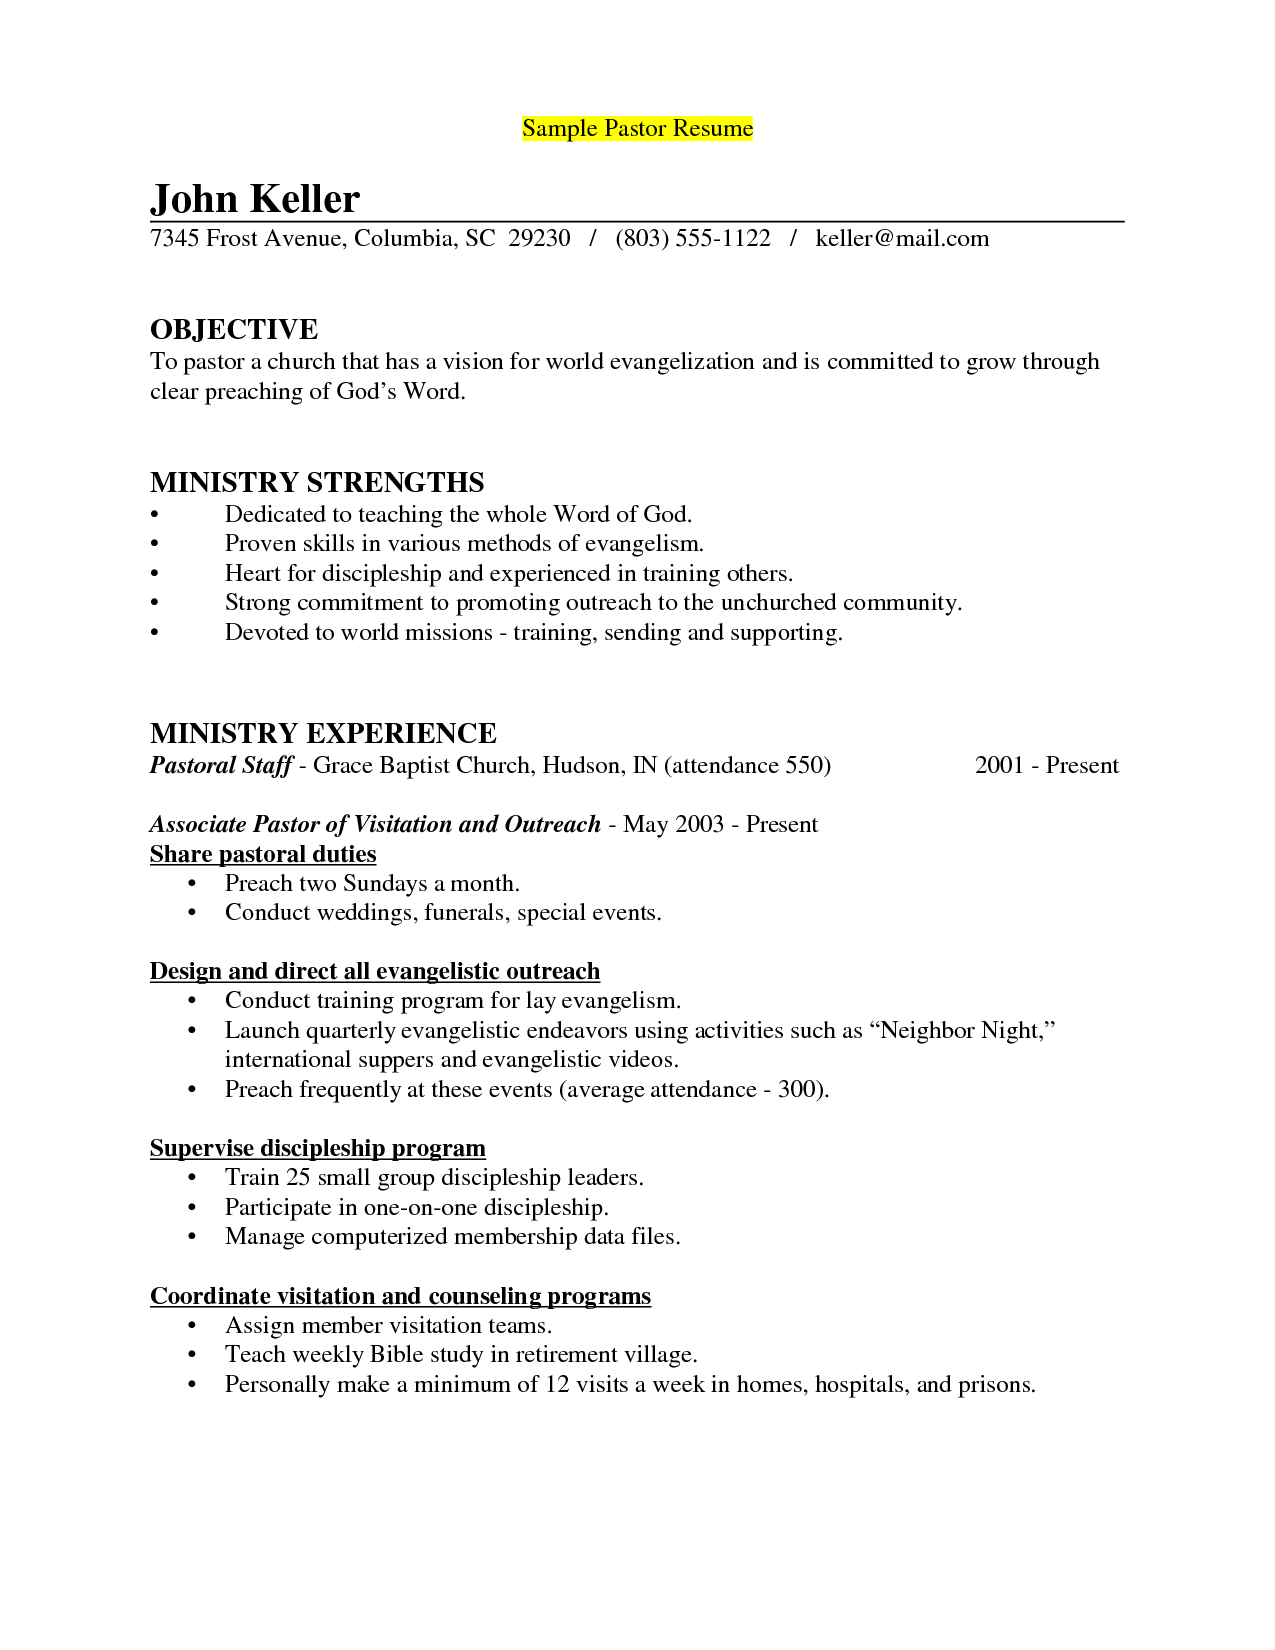 Senior Pastor Resume Sample Of A Pastors Resume  Sample Resumes For Senior Pastors .